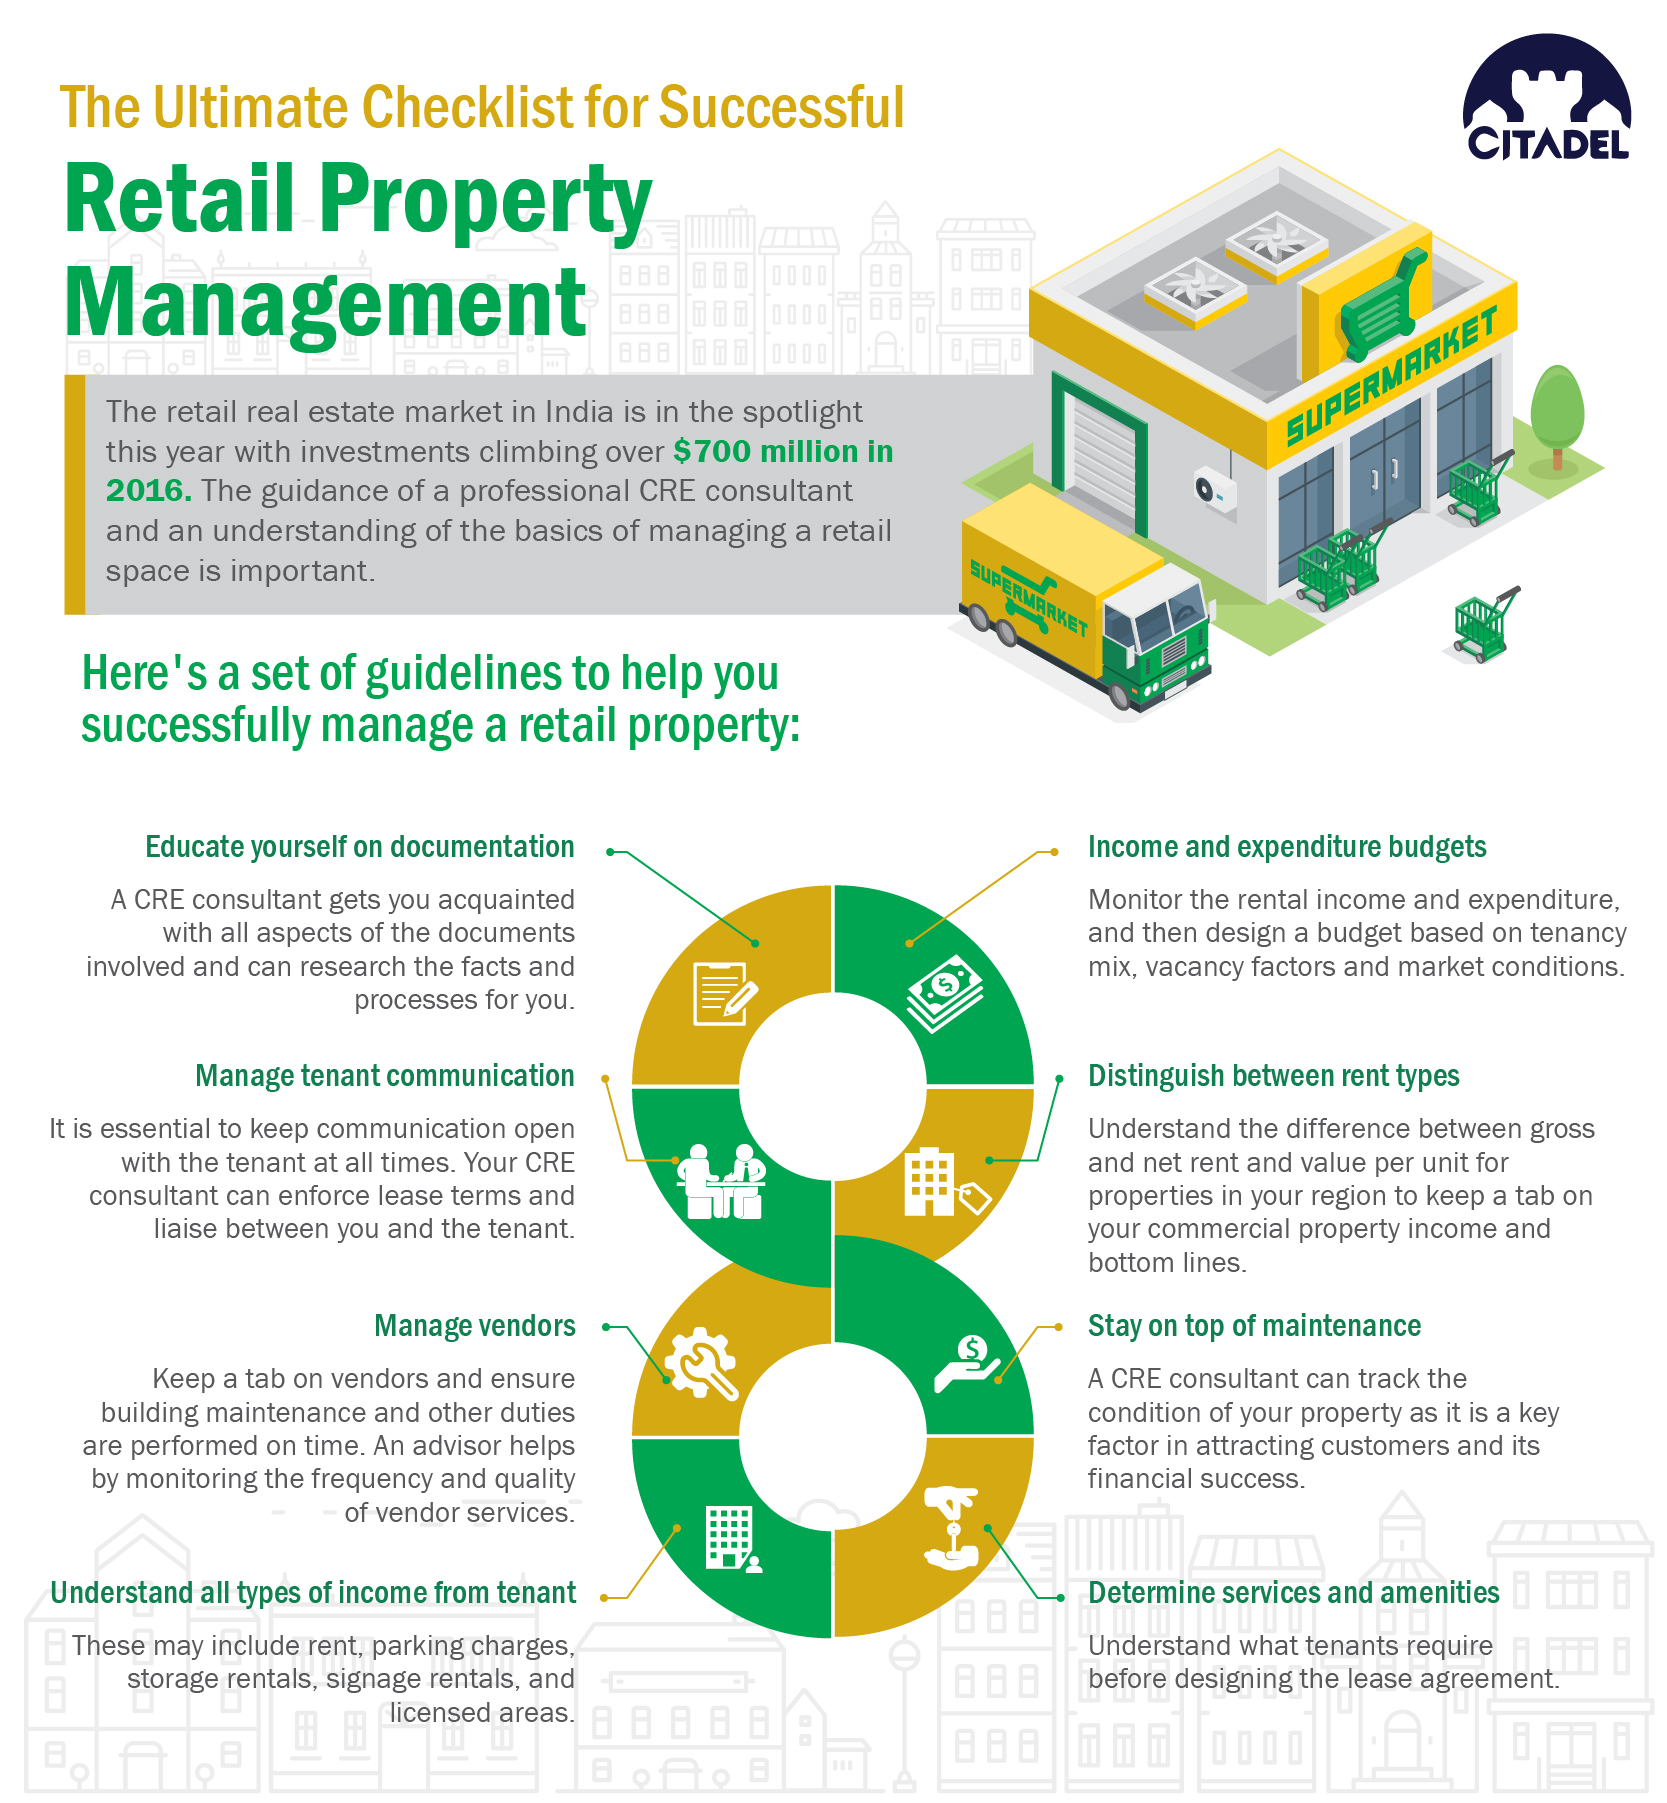 Checklist for successful retail property management